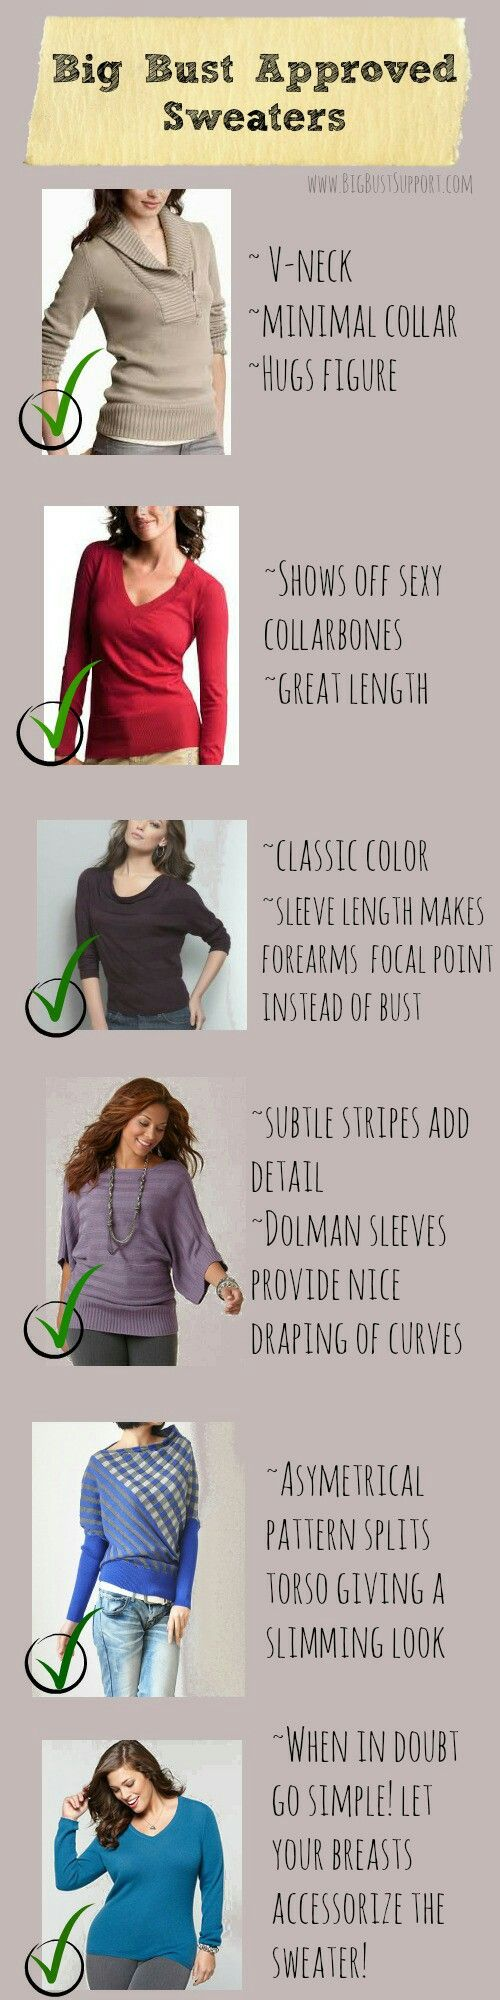 How To Dress An Apple Shaped Figure Ehow - Big bust sweaters do s and don ts for choosing a sweater to flatter your large bust